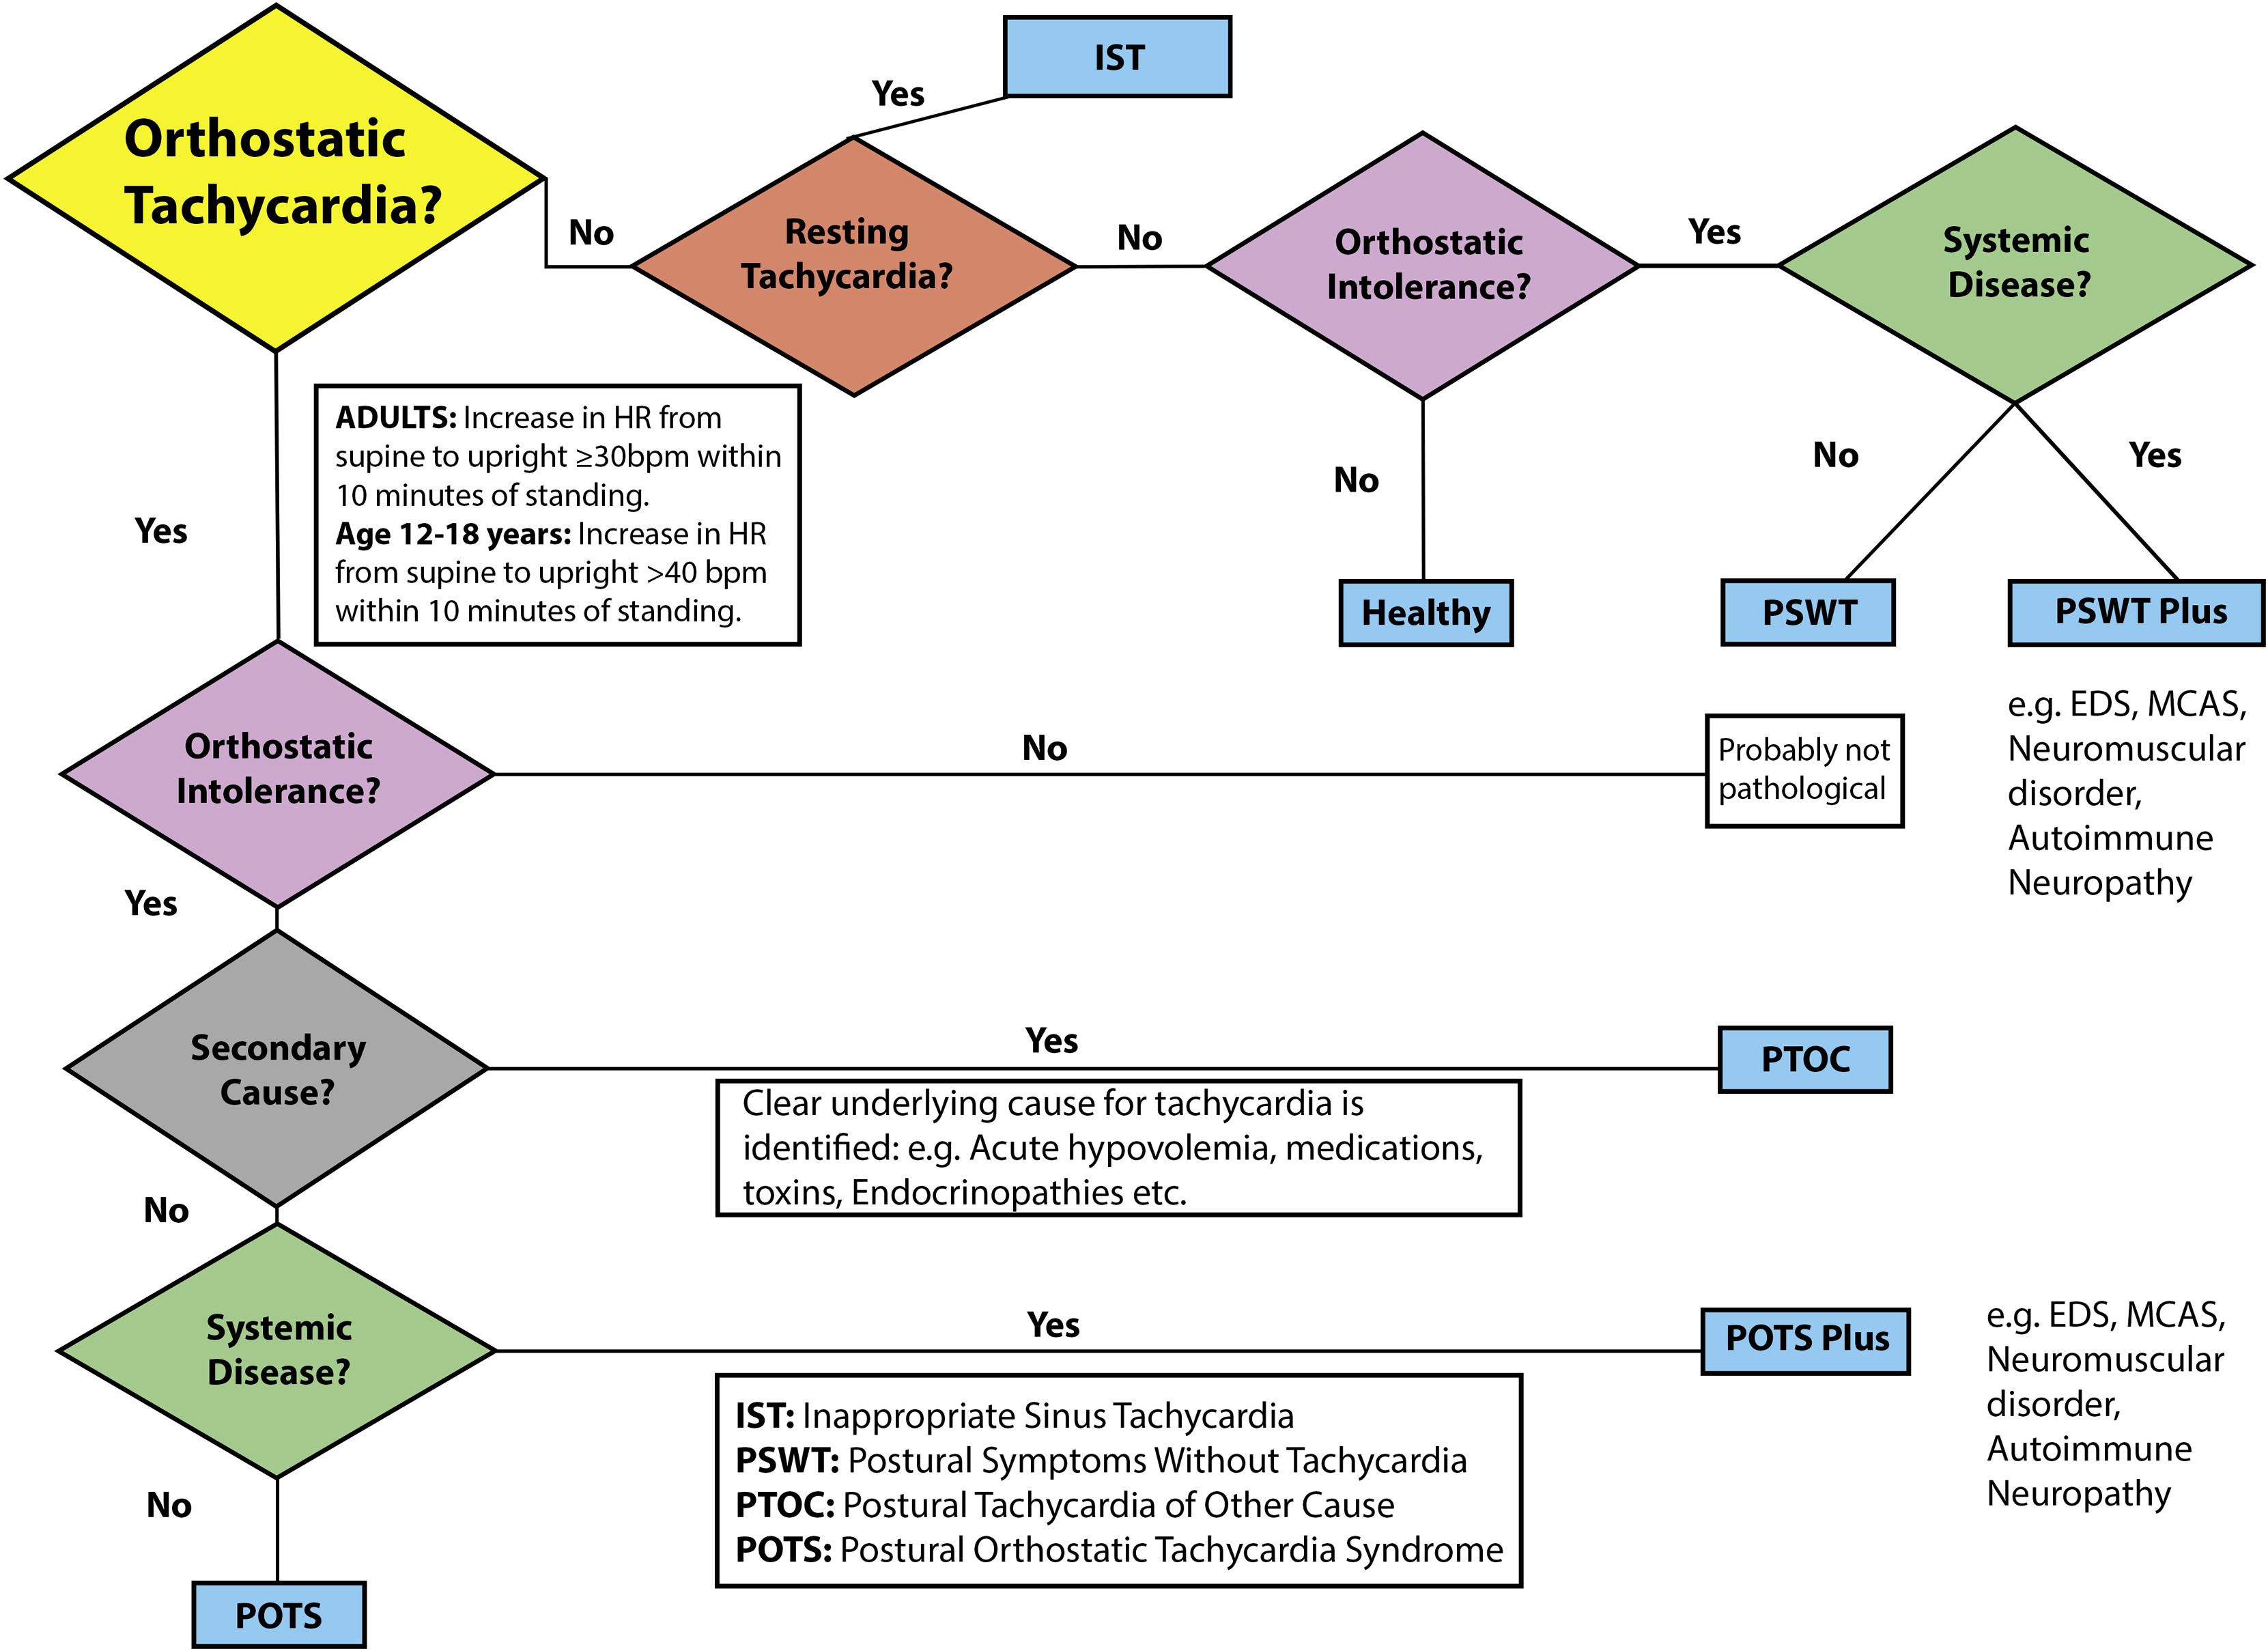 Postural orthostatic tachycardia syndrome (POTS) diagnostic criteria algorithm: a flow algorithm to help clinicians navigate the diagnosis of POTS and related disorders of orthostatic intolerance and orthostatic tachycardia. bpm, beats per minute; EDS, Ehlers-Danlos syndrome; HR, heart rate; IST, inappropriate sinus tachycardia; MCAS, mast cell activation syndrome; PSWT, postural symptoms without tachycardia.